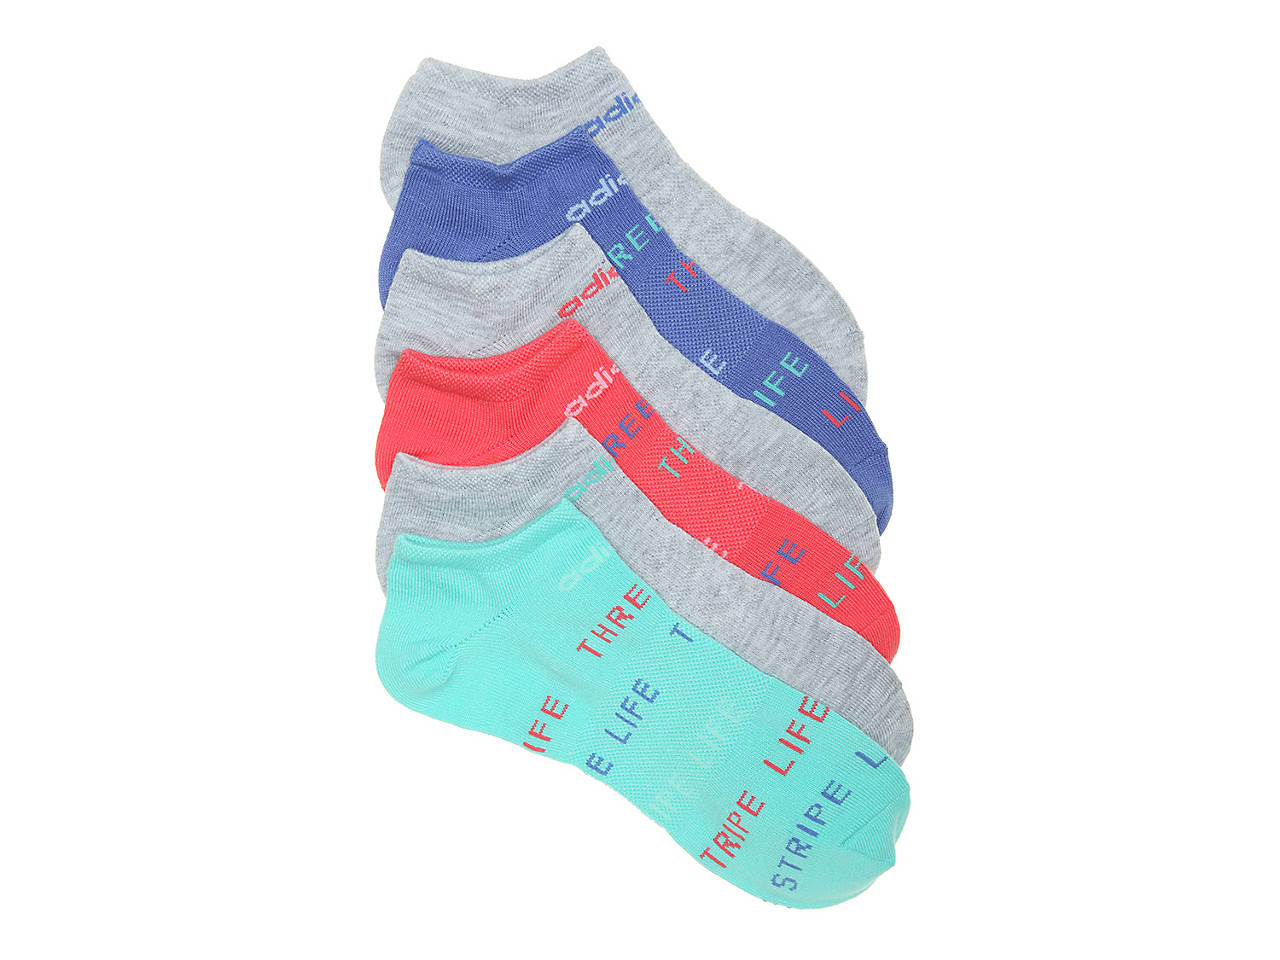 689c6fb812 adidas Superlite Climalite Toddler & Youth No Show Socks - 6 Pack ...